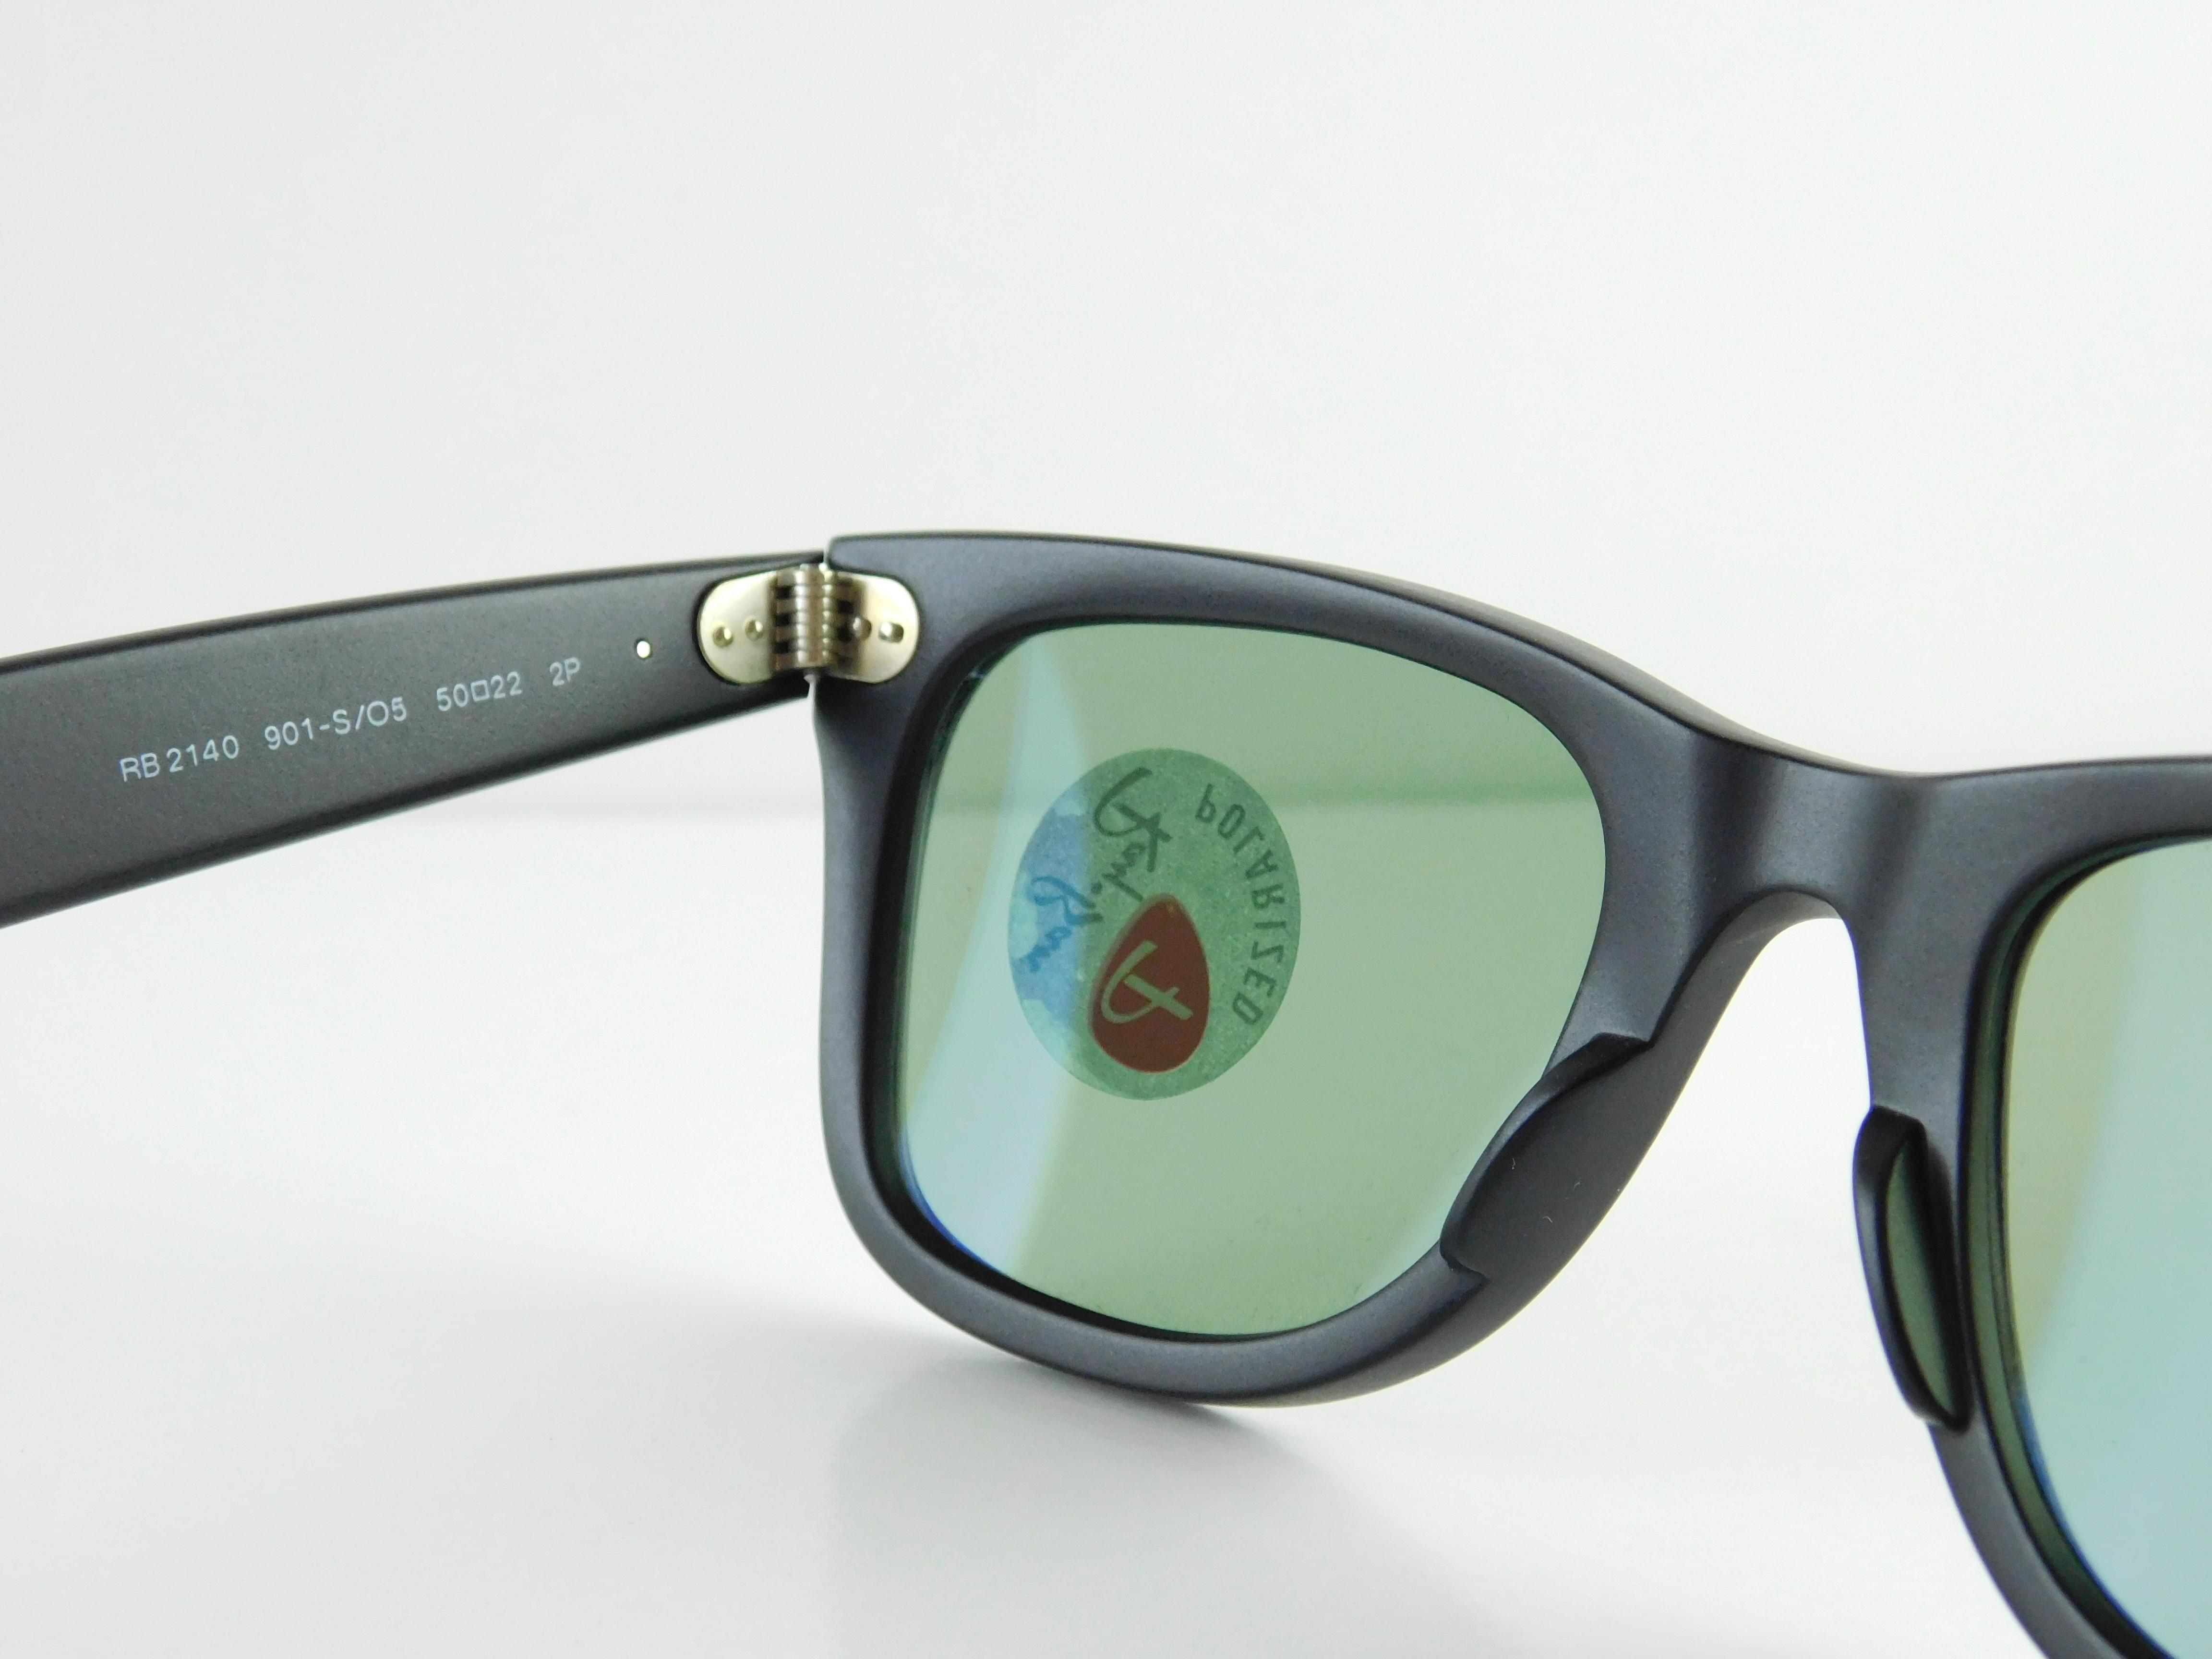 b56534cc23 Are Ray Ban Sunglasses Made In Italy 417